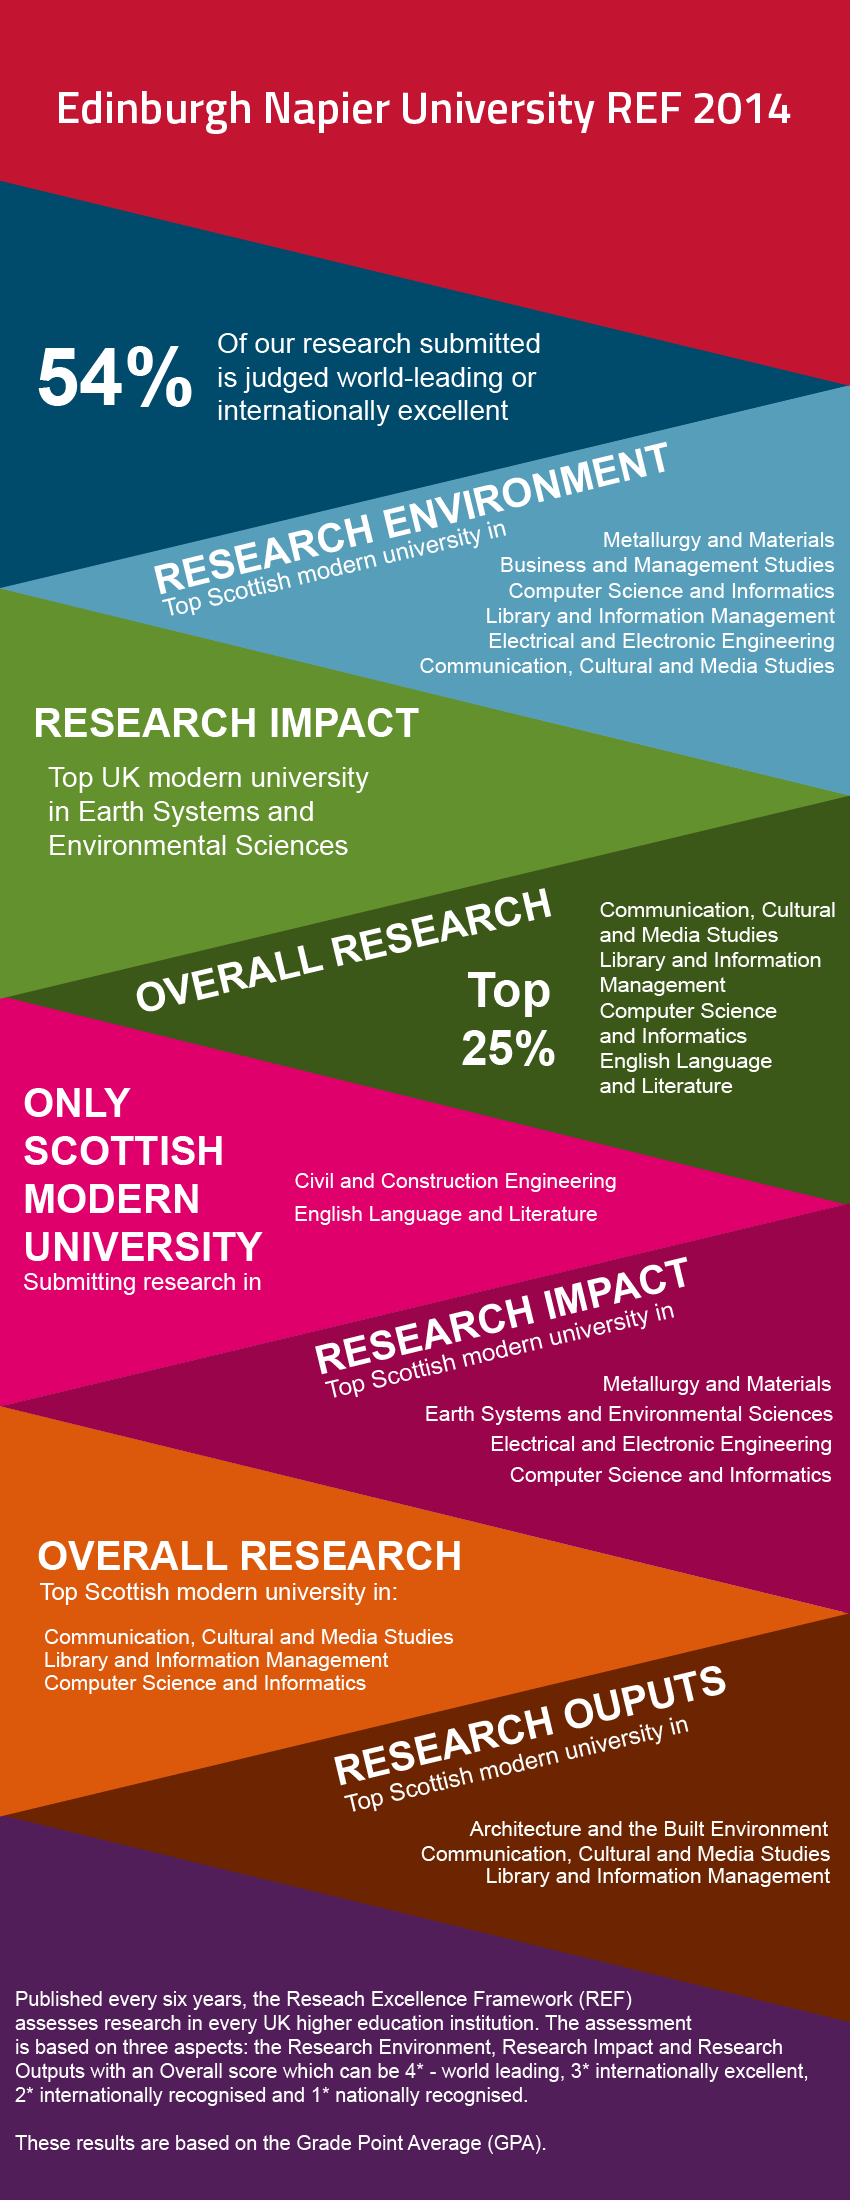 Edinburgh Napier University REF 2014 Infographic